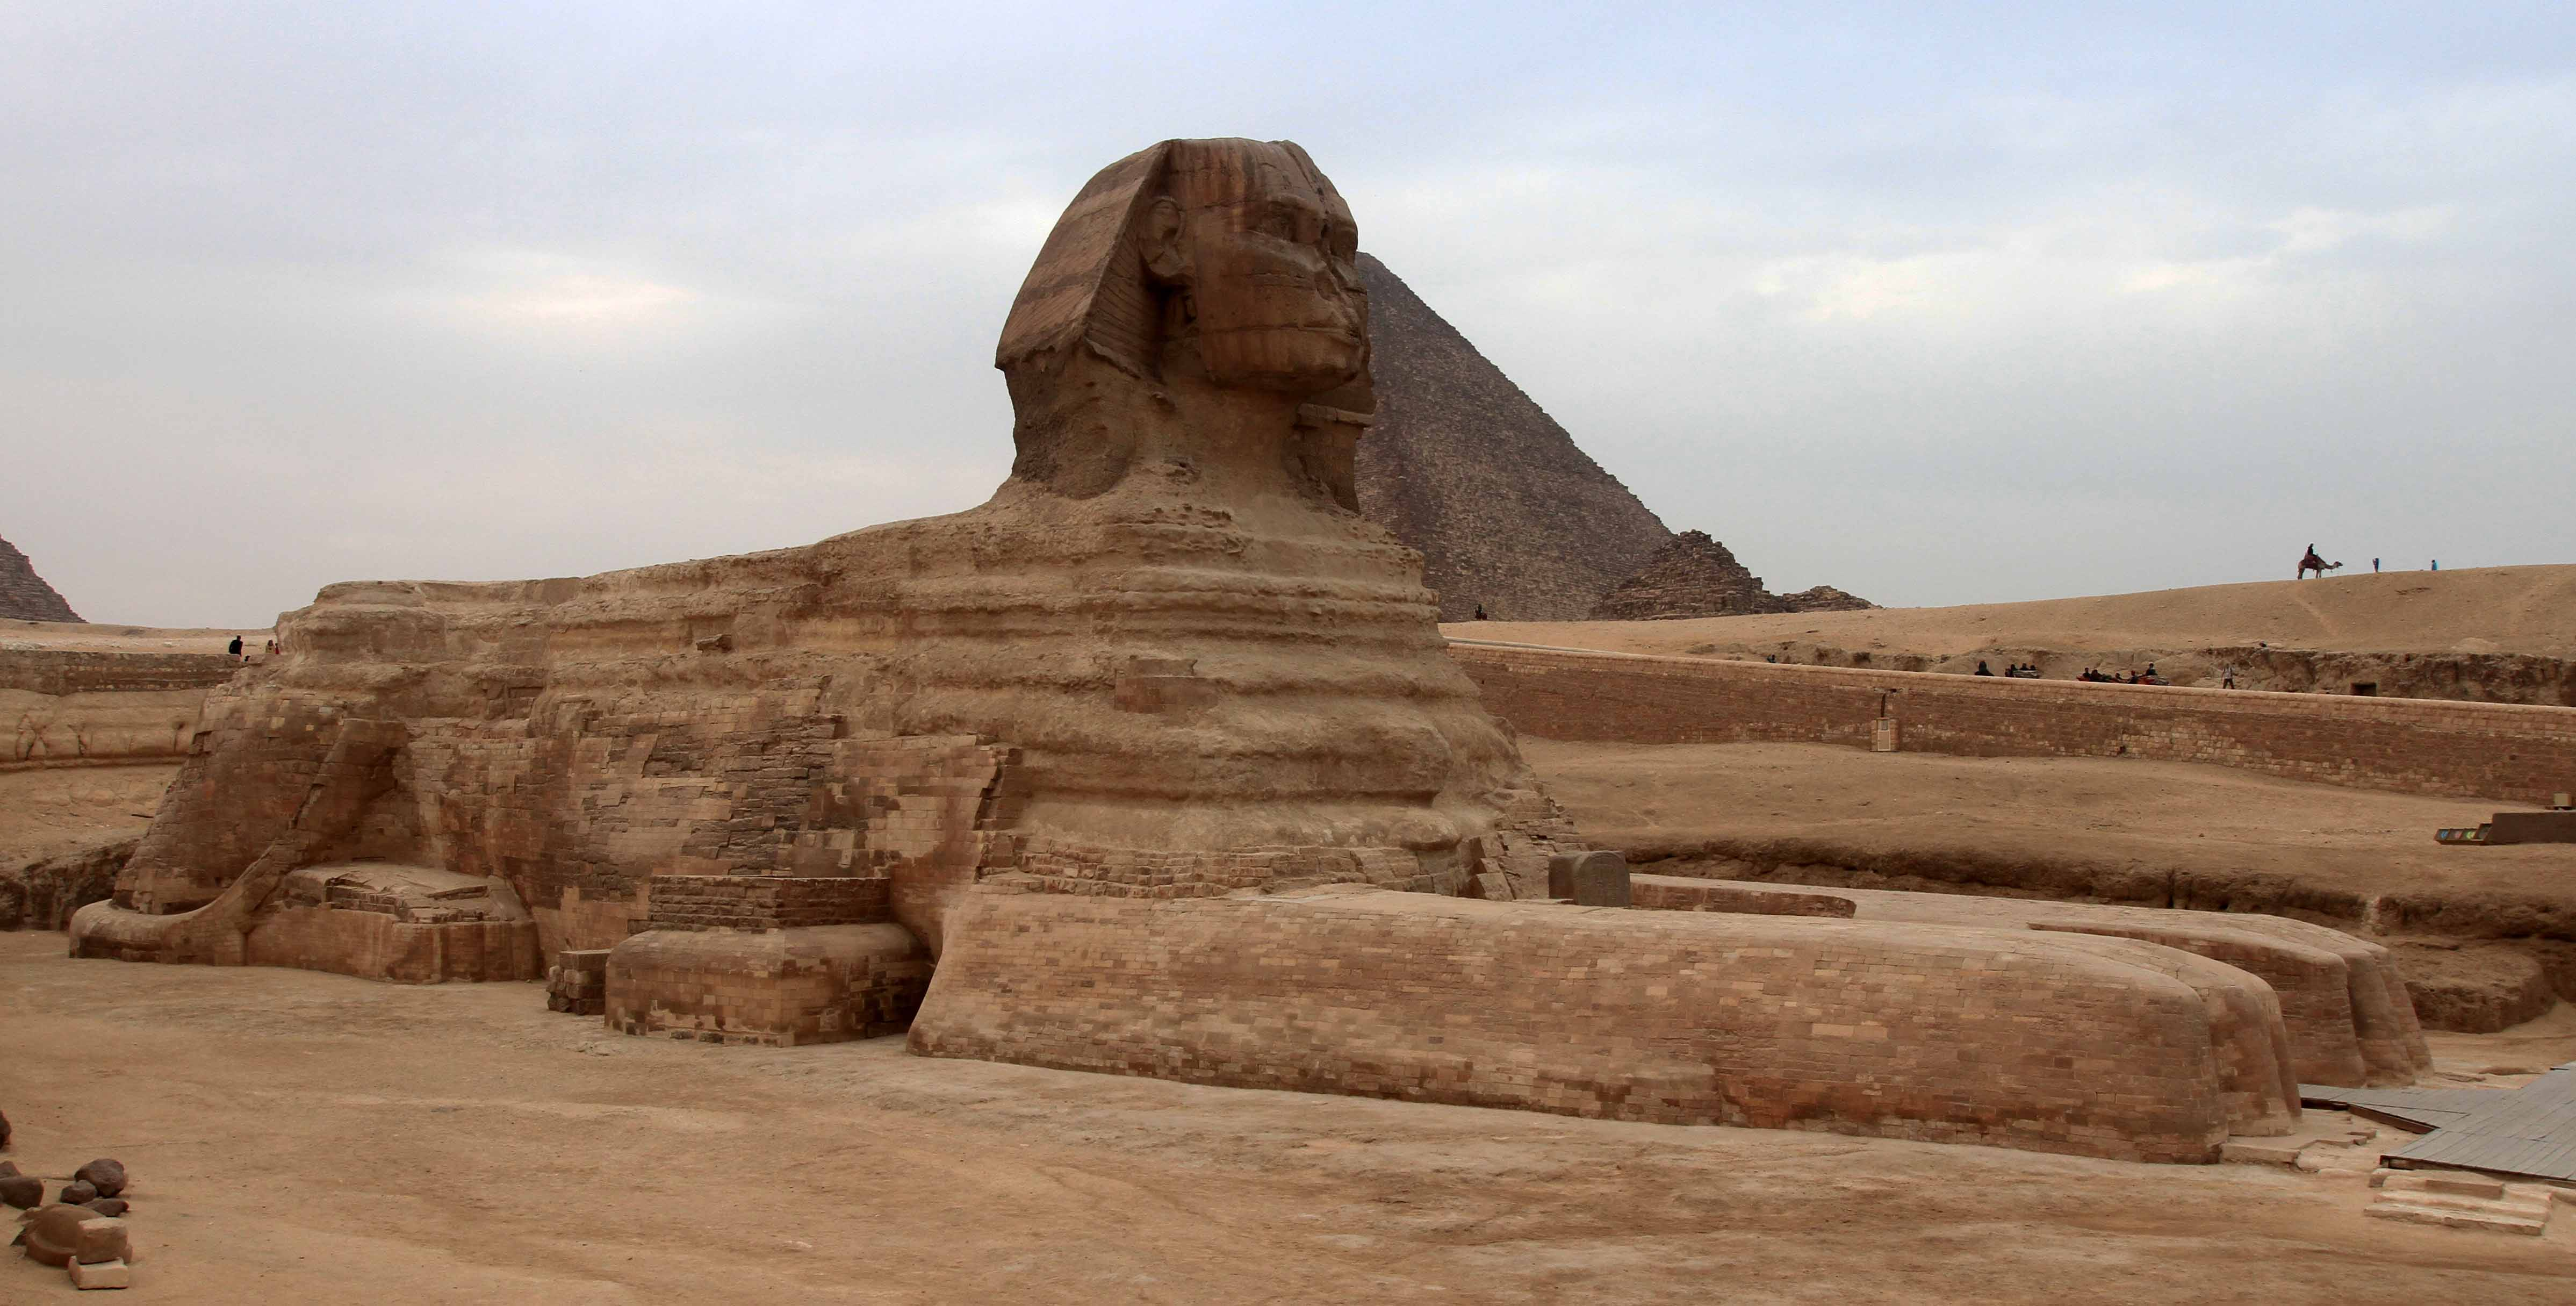 The Sphinx of Giza. & January 26 2015 | The Wolff Chronicles